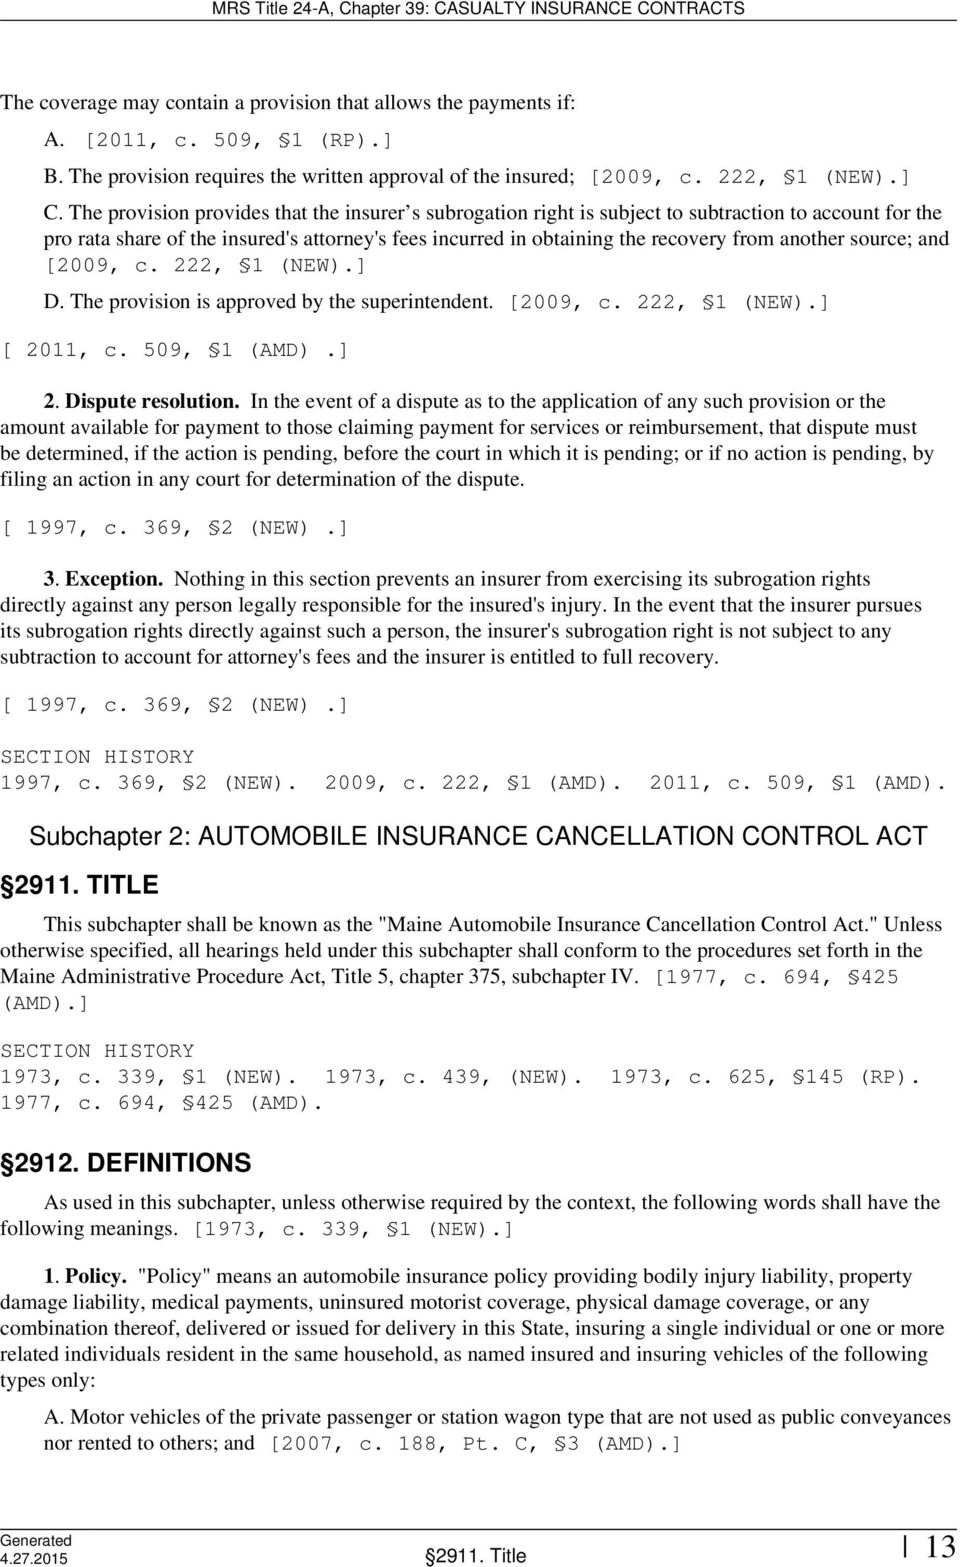 another source; and [2009, c. 222, 1 (NEW).] D. The provision is approved by the superintendent. [2009, c. 222, 1 (NEW).] [ 2011, c. 509, 1 (AMD).] 2. Dispute resolution.